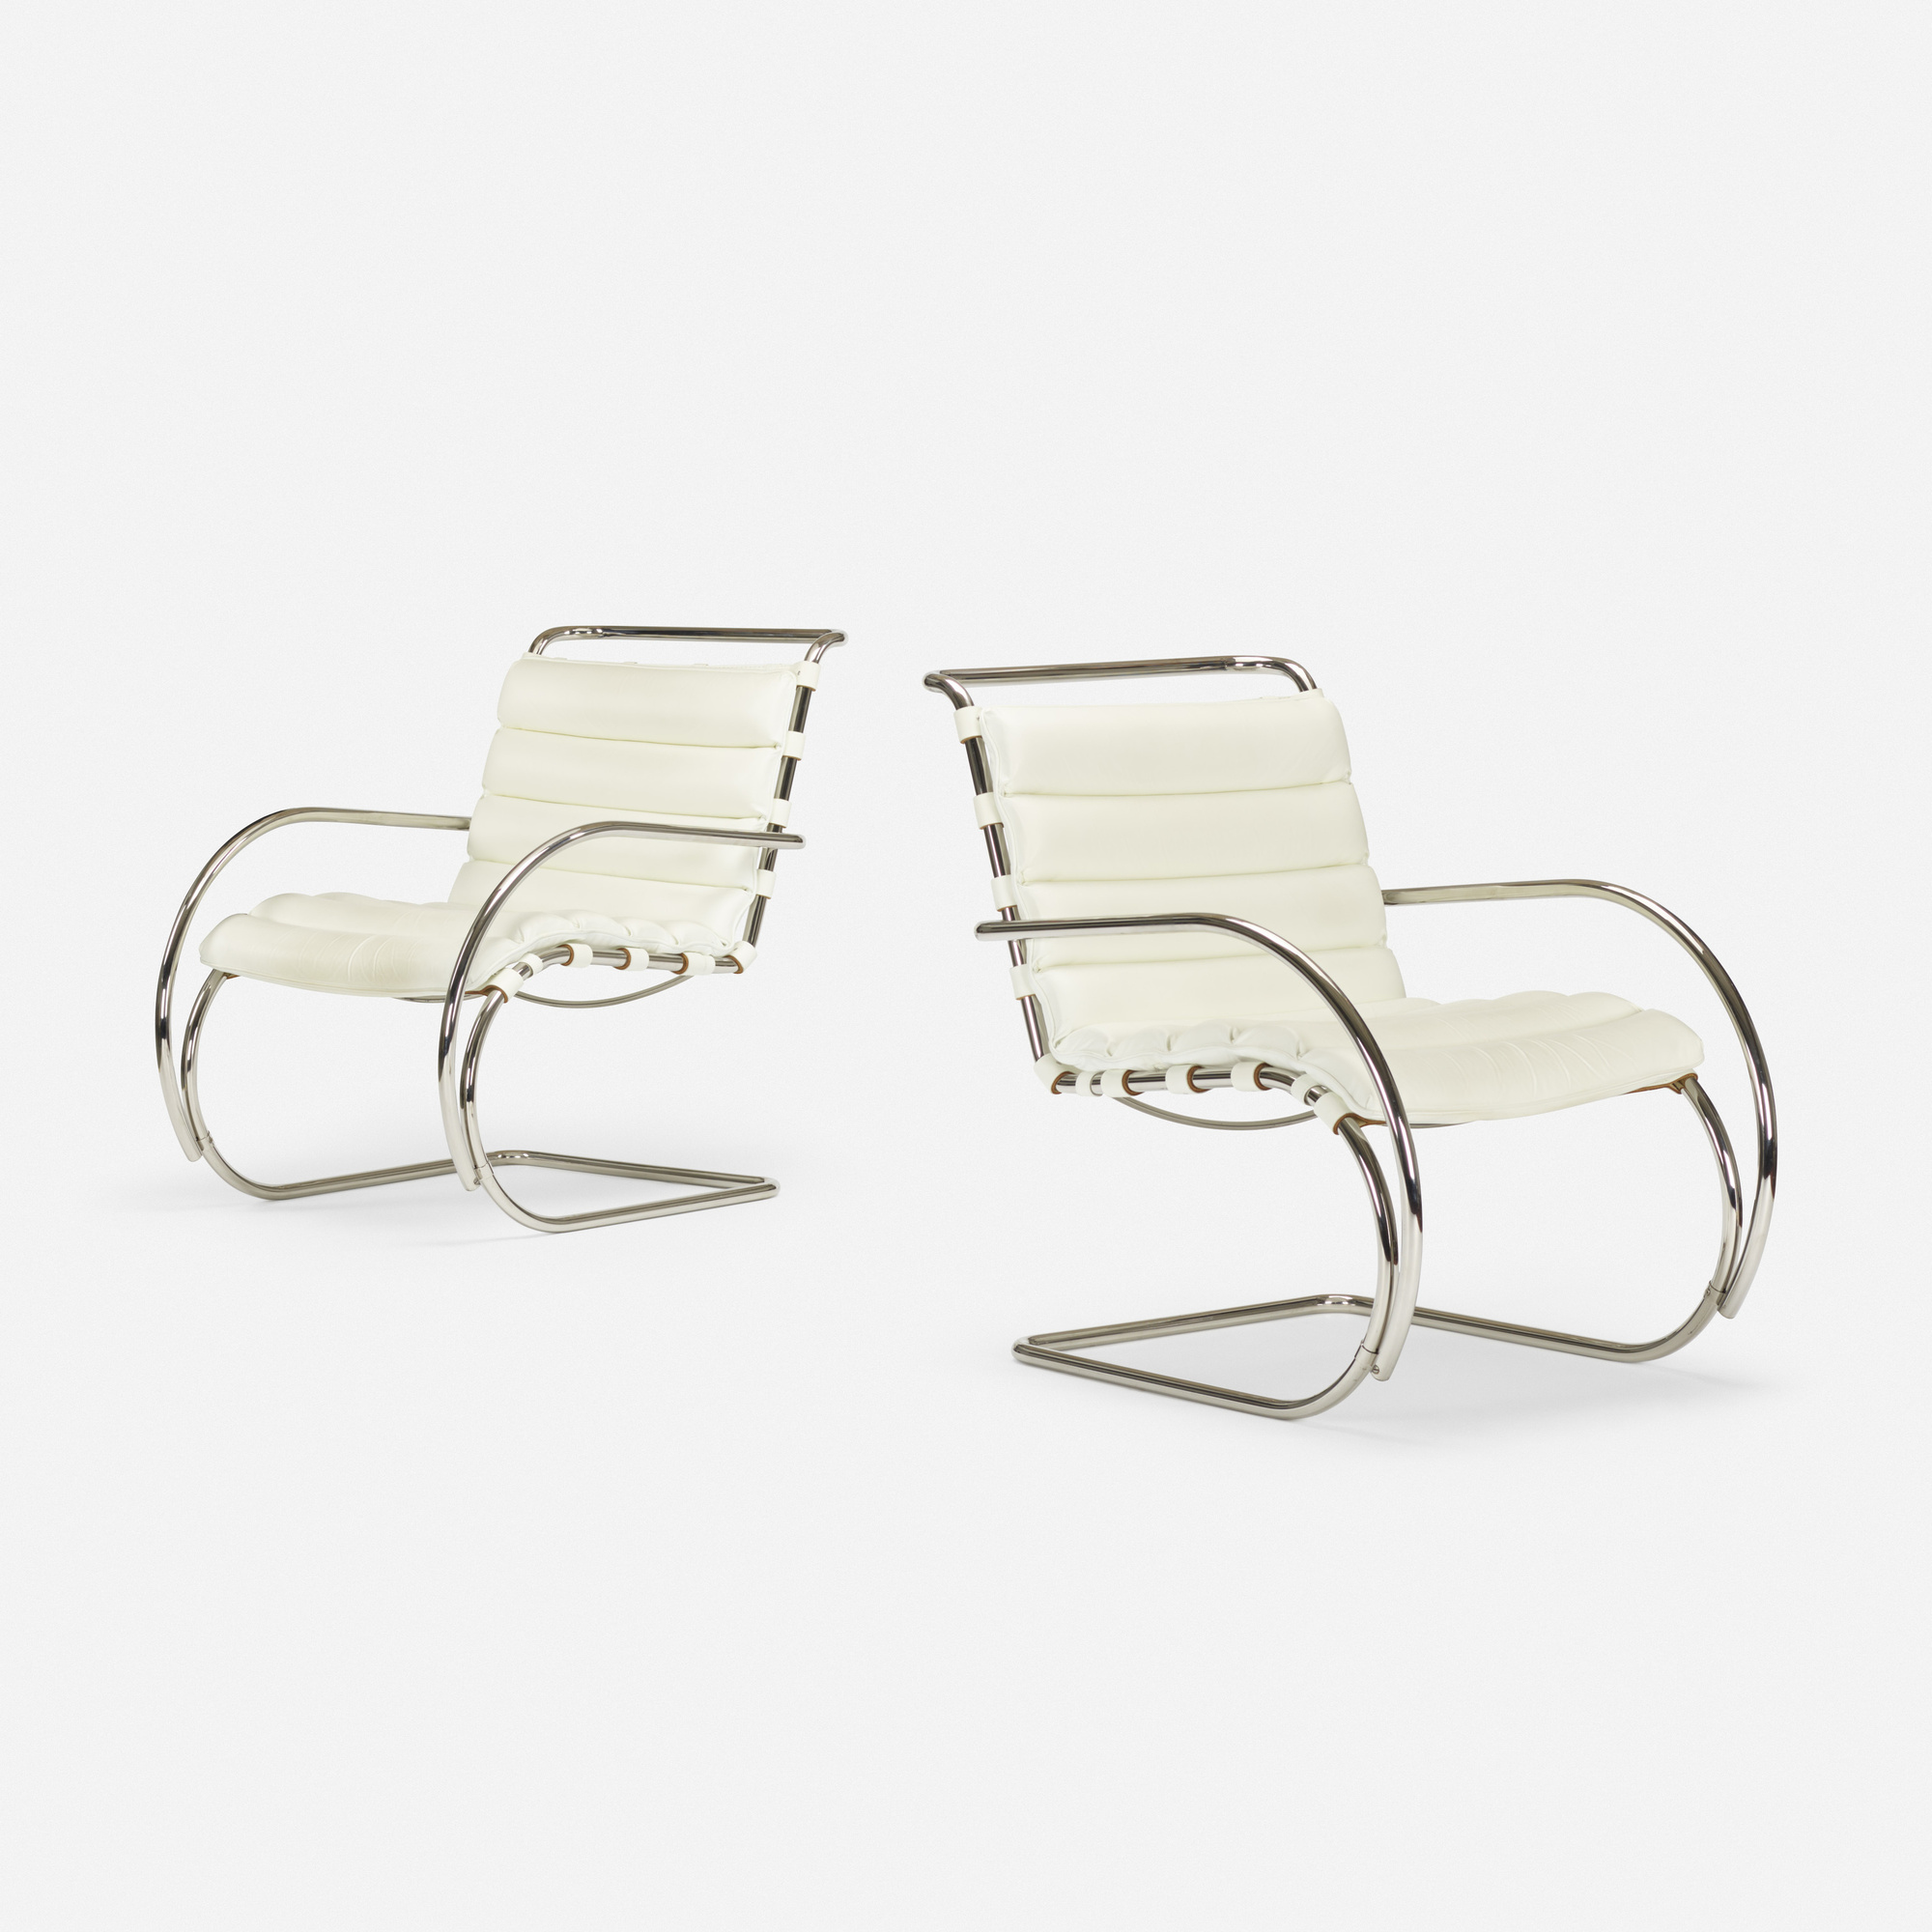 Sensational 356 Ludwig Mies Van Der Rohe Mr Lounge Chairs Pair Art Squirreltailoven Fun Painted Chair Ideas Images Squirreltailovenorg